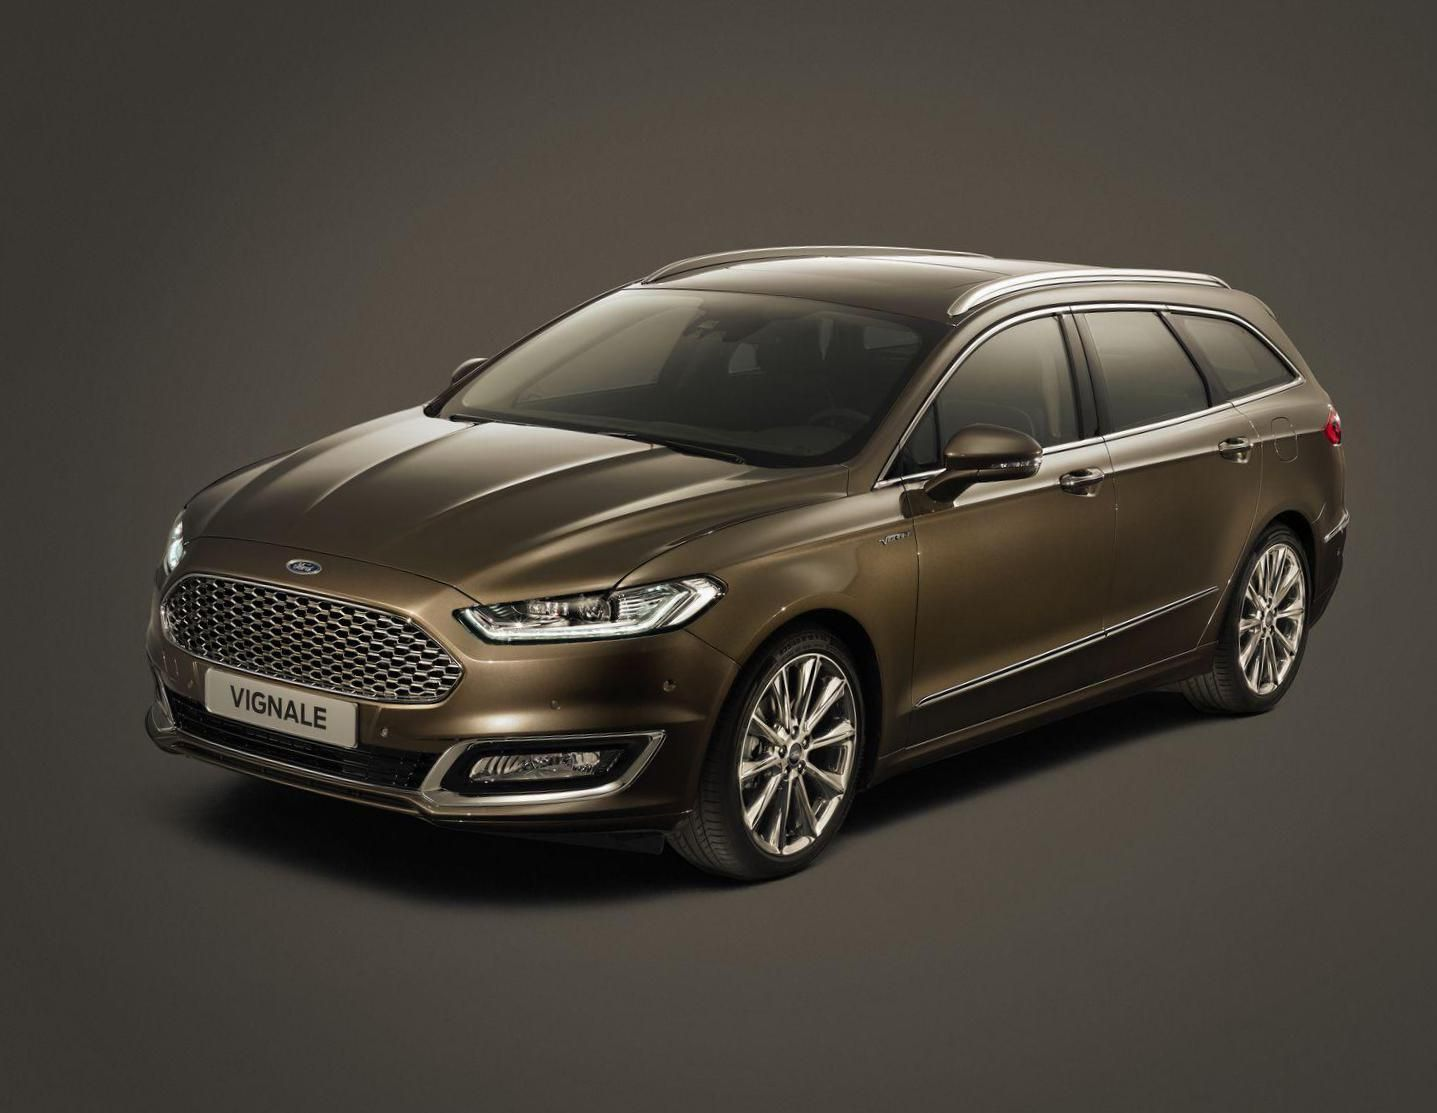 Ford mondeo vignale wagon photos and specs photo ford mondeo vignale wagon spec and 24 perfect photos of ford mondeo vignale wagon